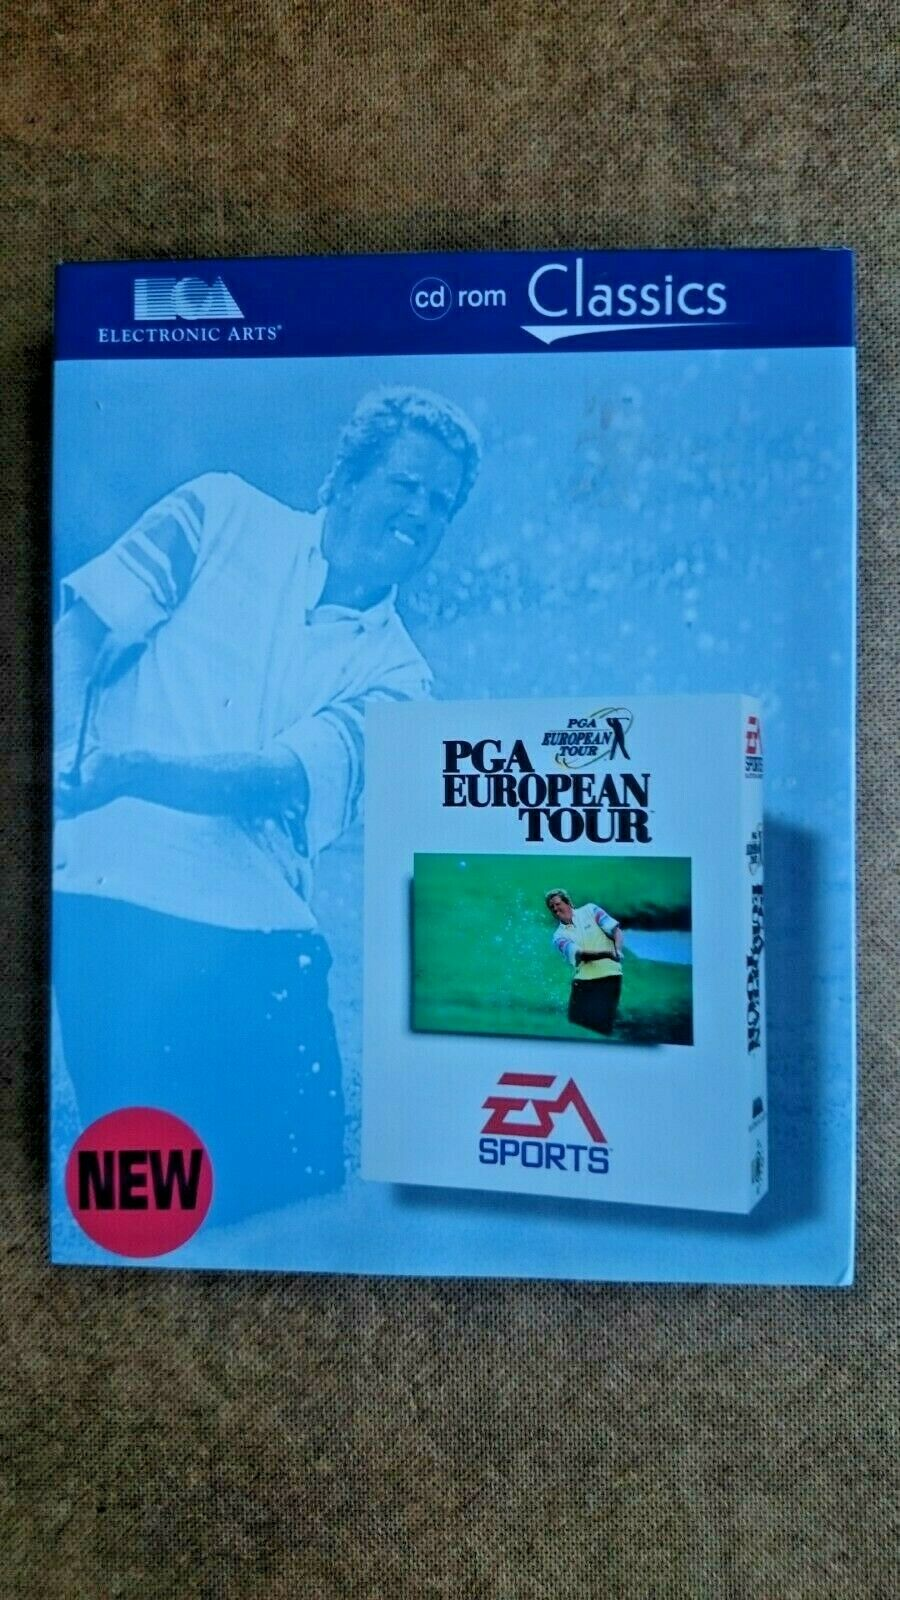 PGA European Tour (PC Windows 1996) - Big Box Edition